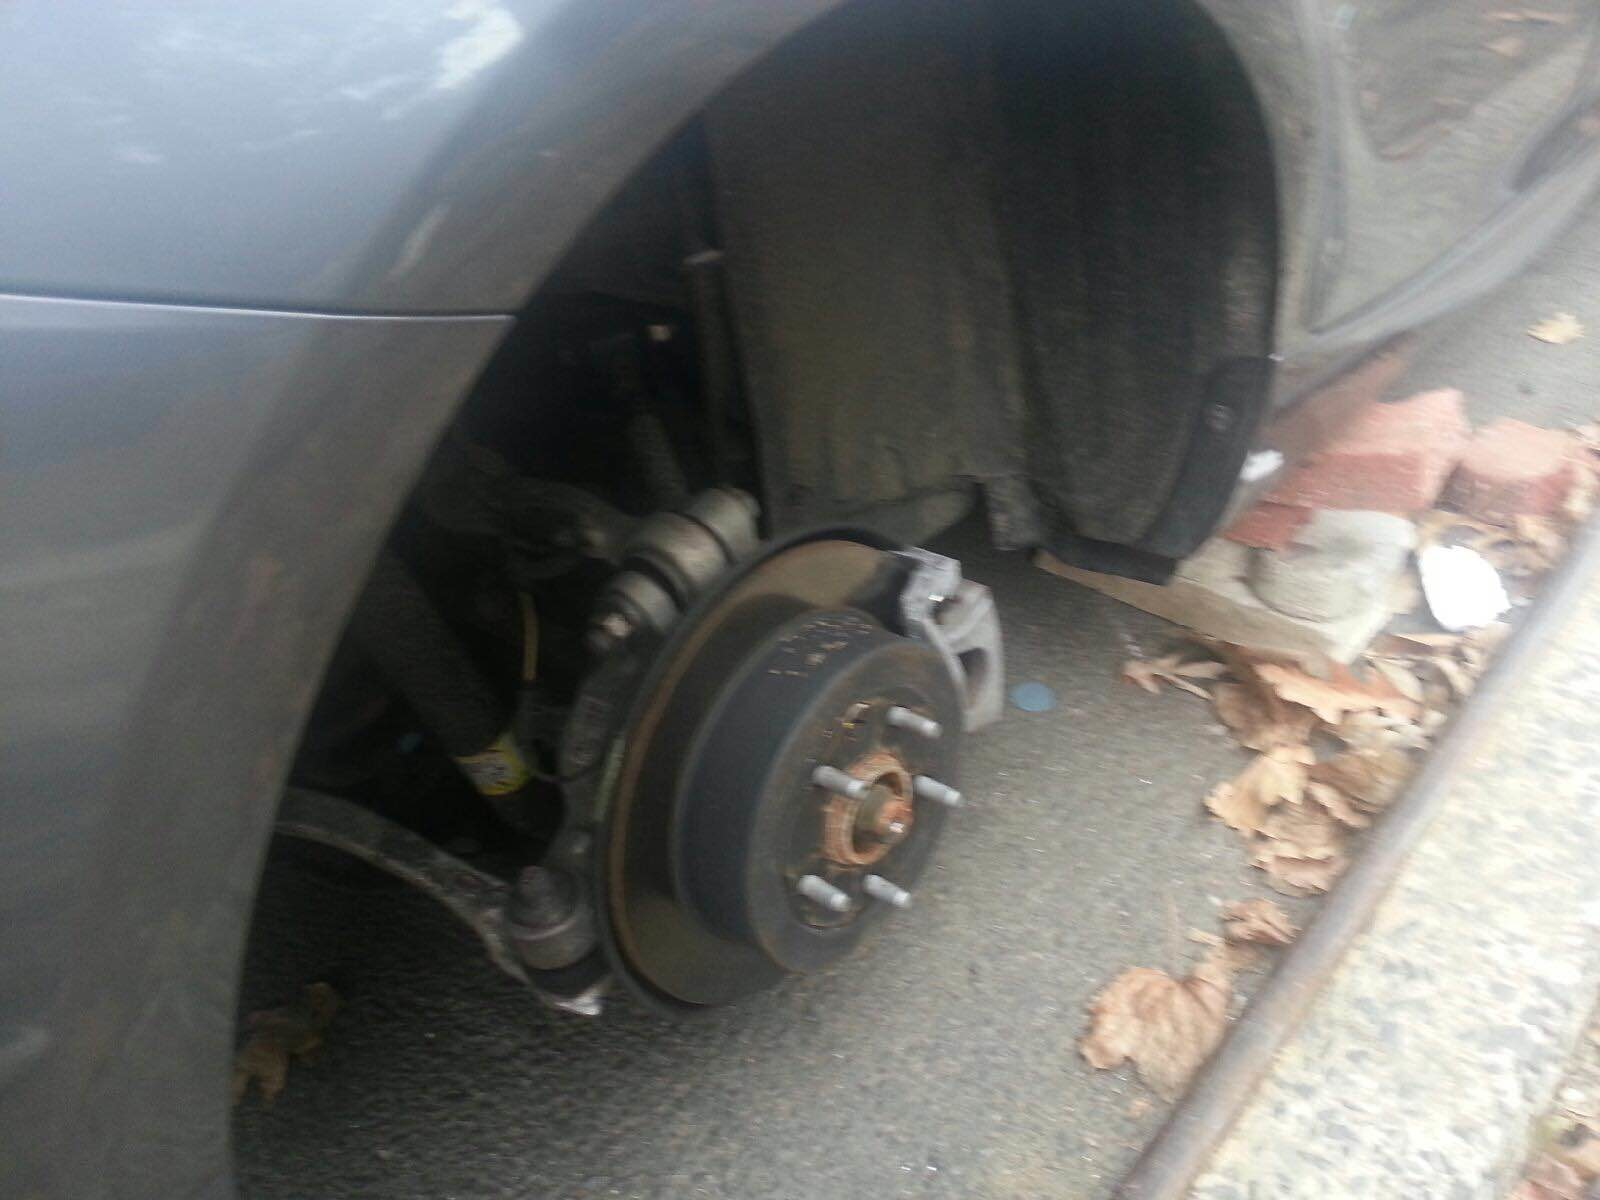 As Parts Costs Rise So Do Rim And Tire Thefts The Riverdale Press